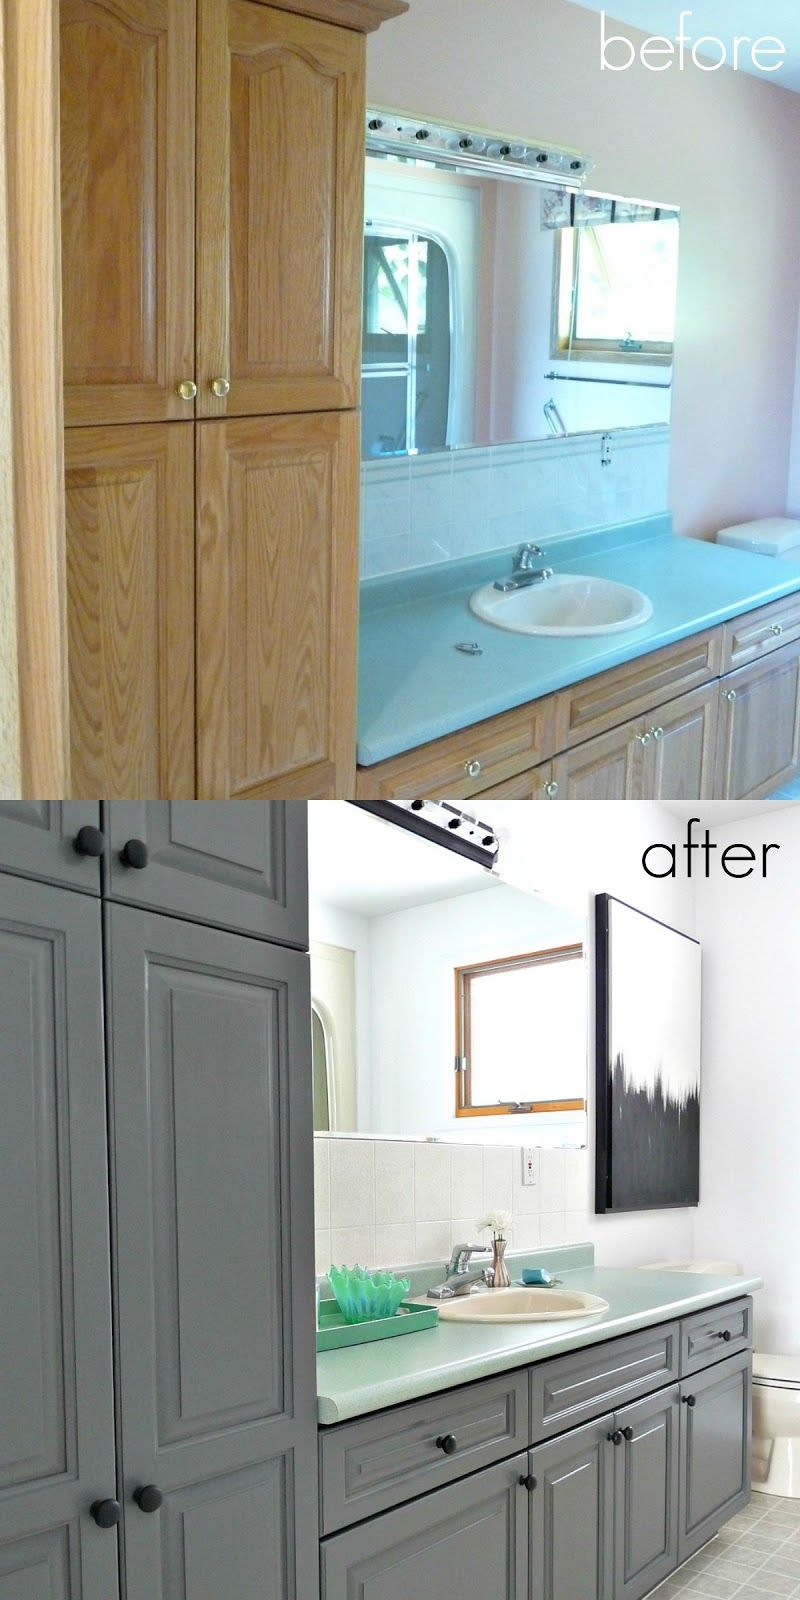 A Budget-Friendly Bathroom Makeover Using Paint | Budgeting, Cabinet ...